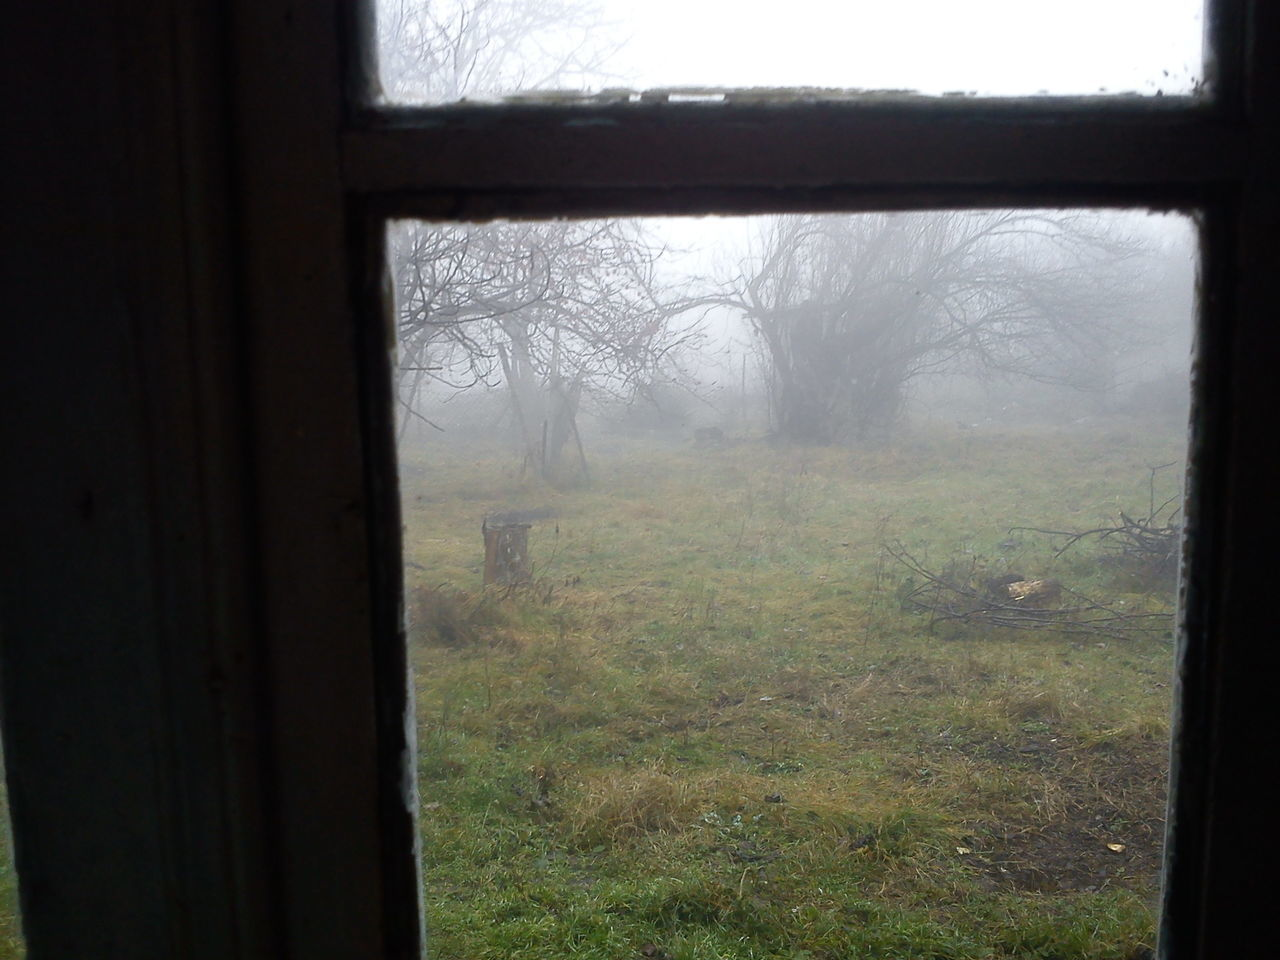 window, tree, day, nature, landscape, no people, fog, indoors, beauty in nature, sky